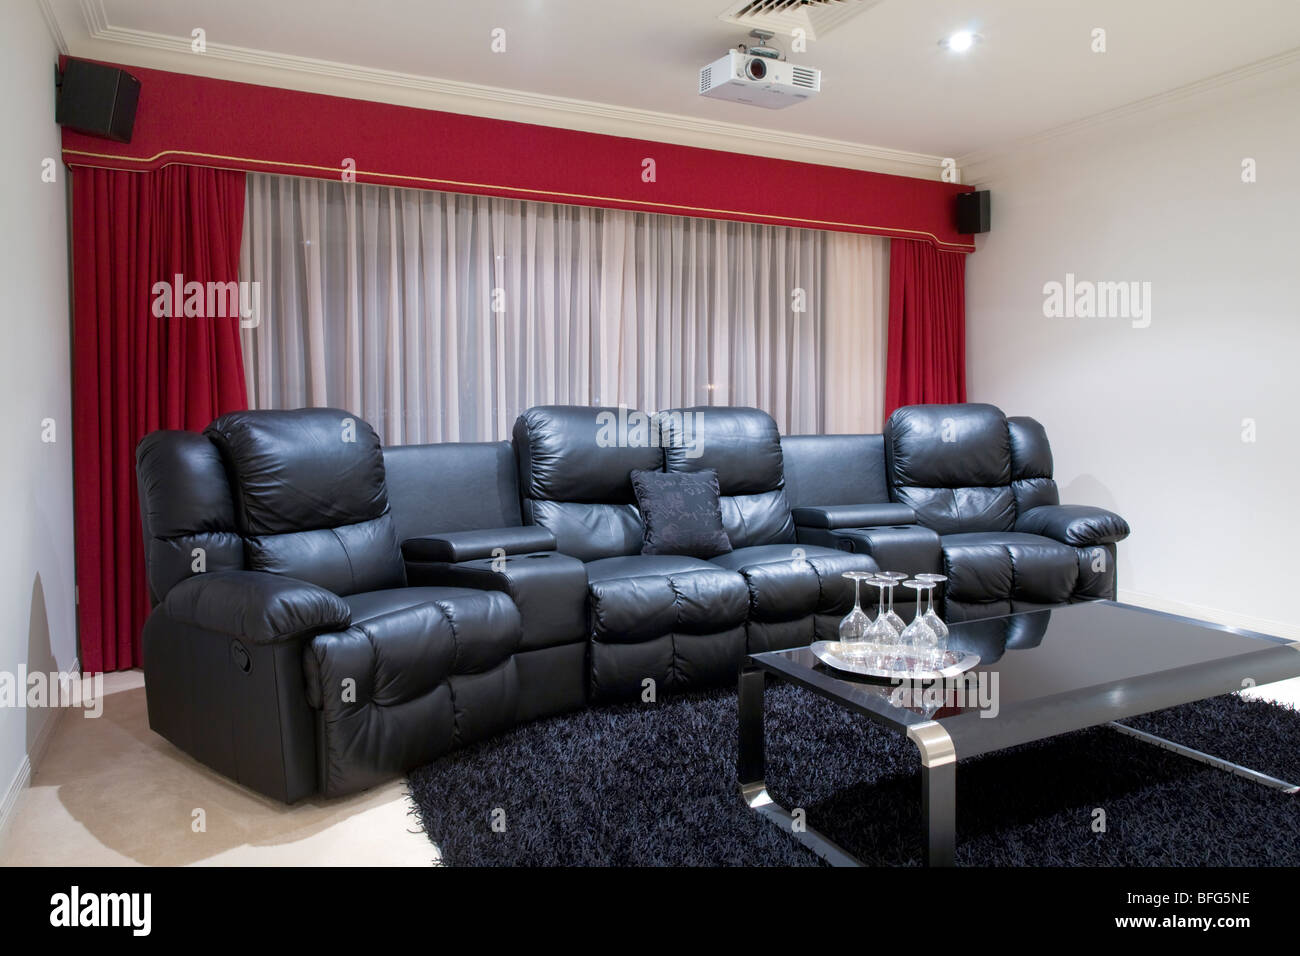 theatre room chairs little tikes table with drawers and 2 home theater black leather recliner red curtains rug wine glasses